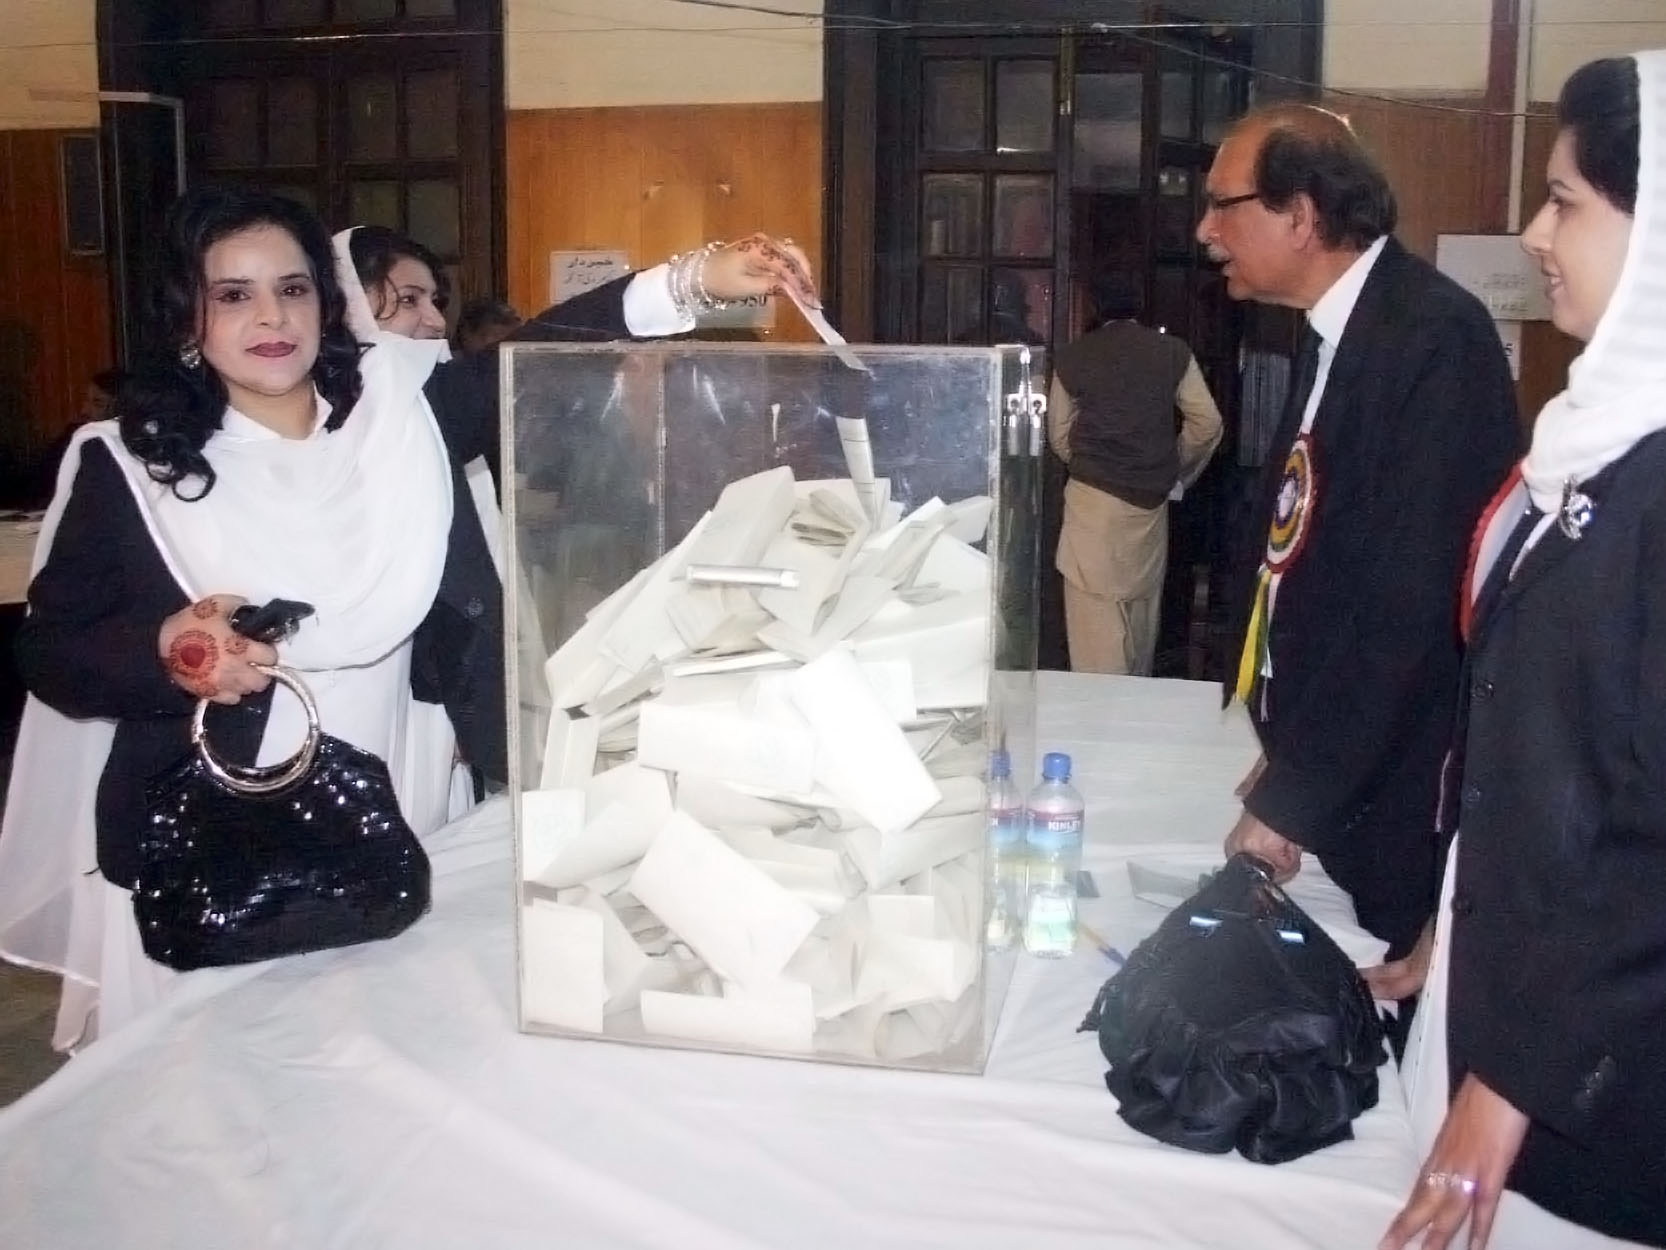 lawyers cast their votes during the lhcba elections on saturday february 23 2013 photo ppi